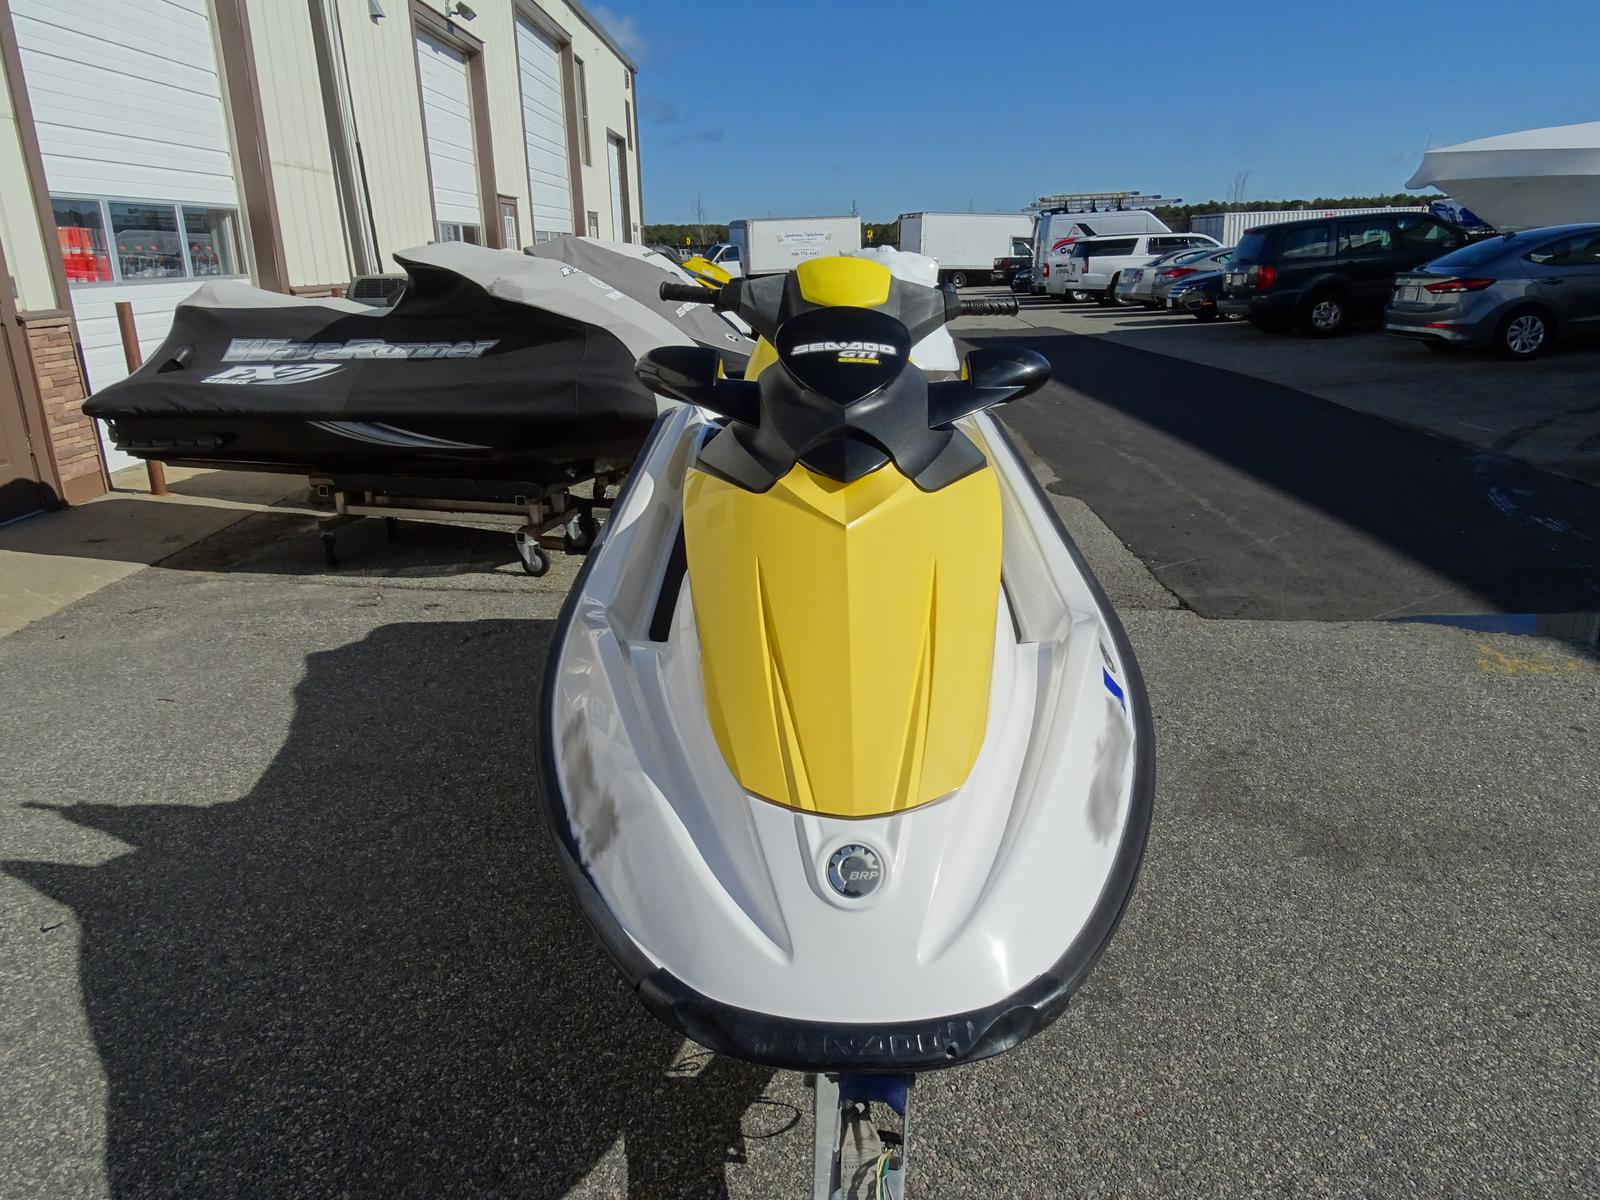 2007 Sea-Doo GTI SE 130 HP for sale in Hyannis, MA  Big Wave Craig's